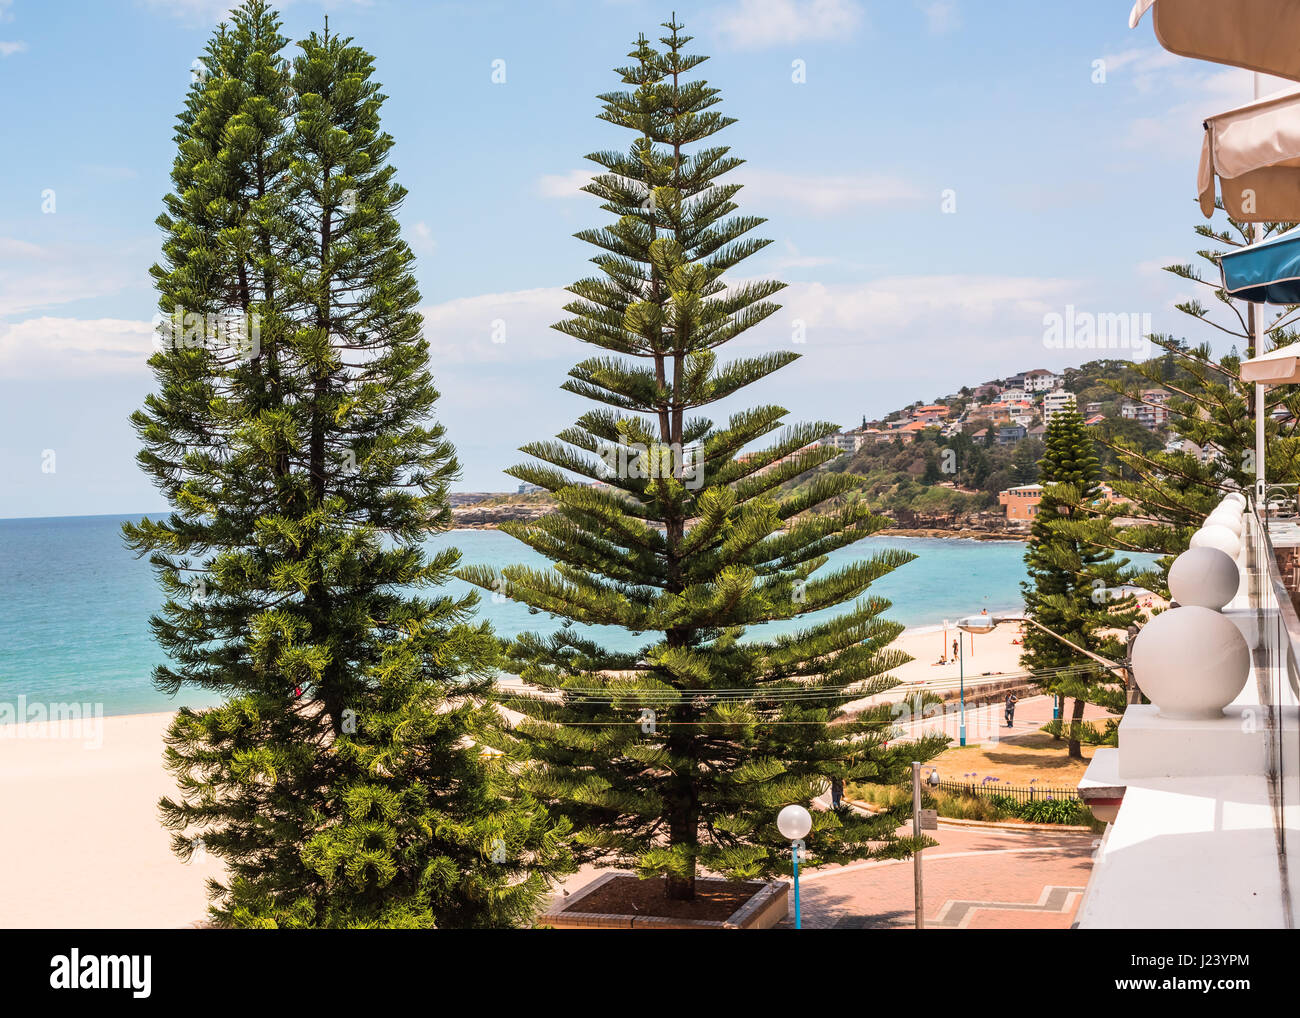 Coniferous trees in front of the Coogee Pavilion in Sydney, New South Wales, Australia - Stock Image